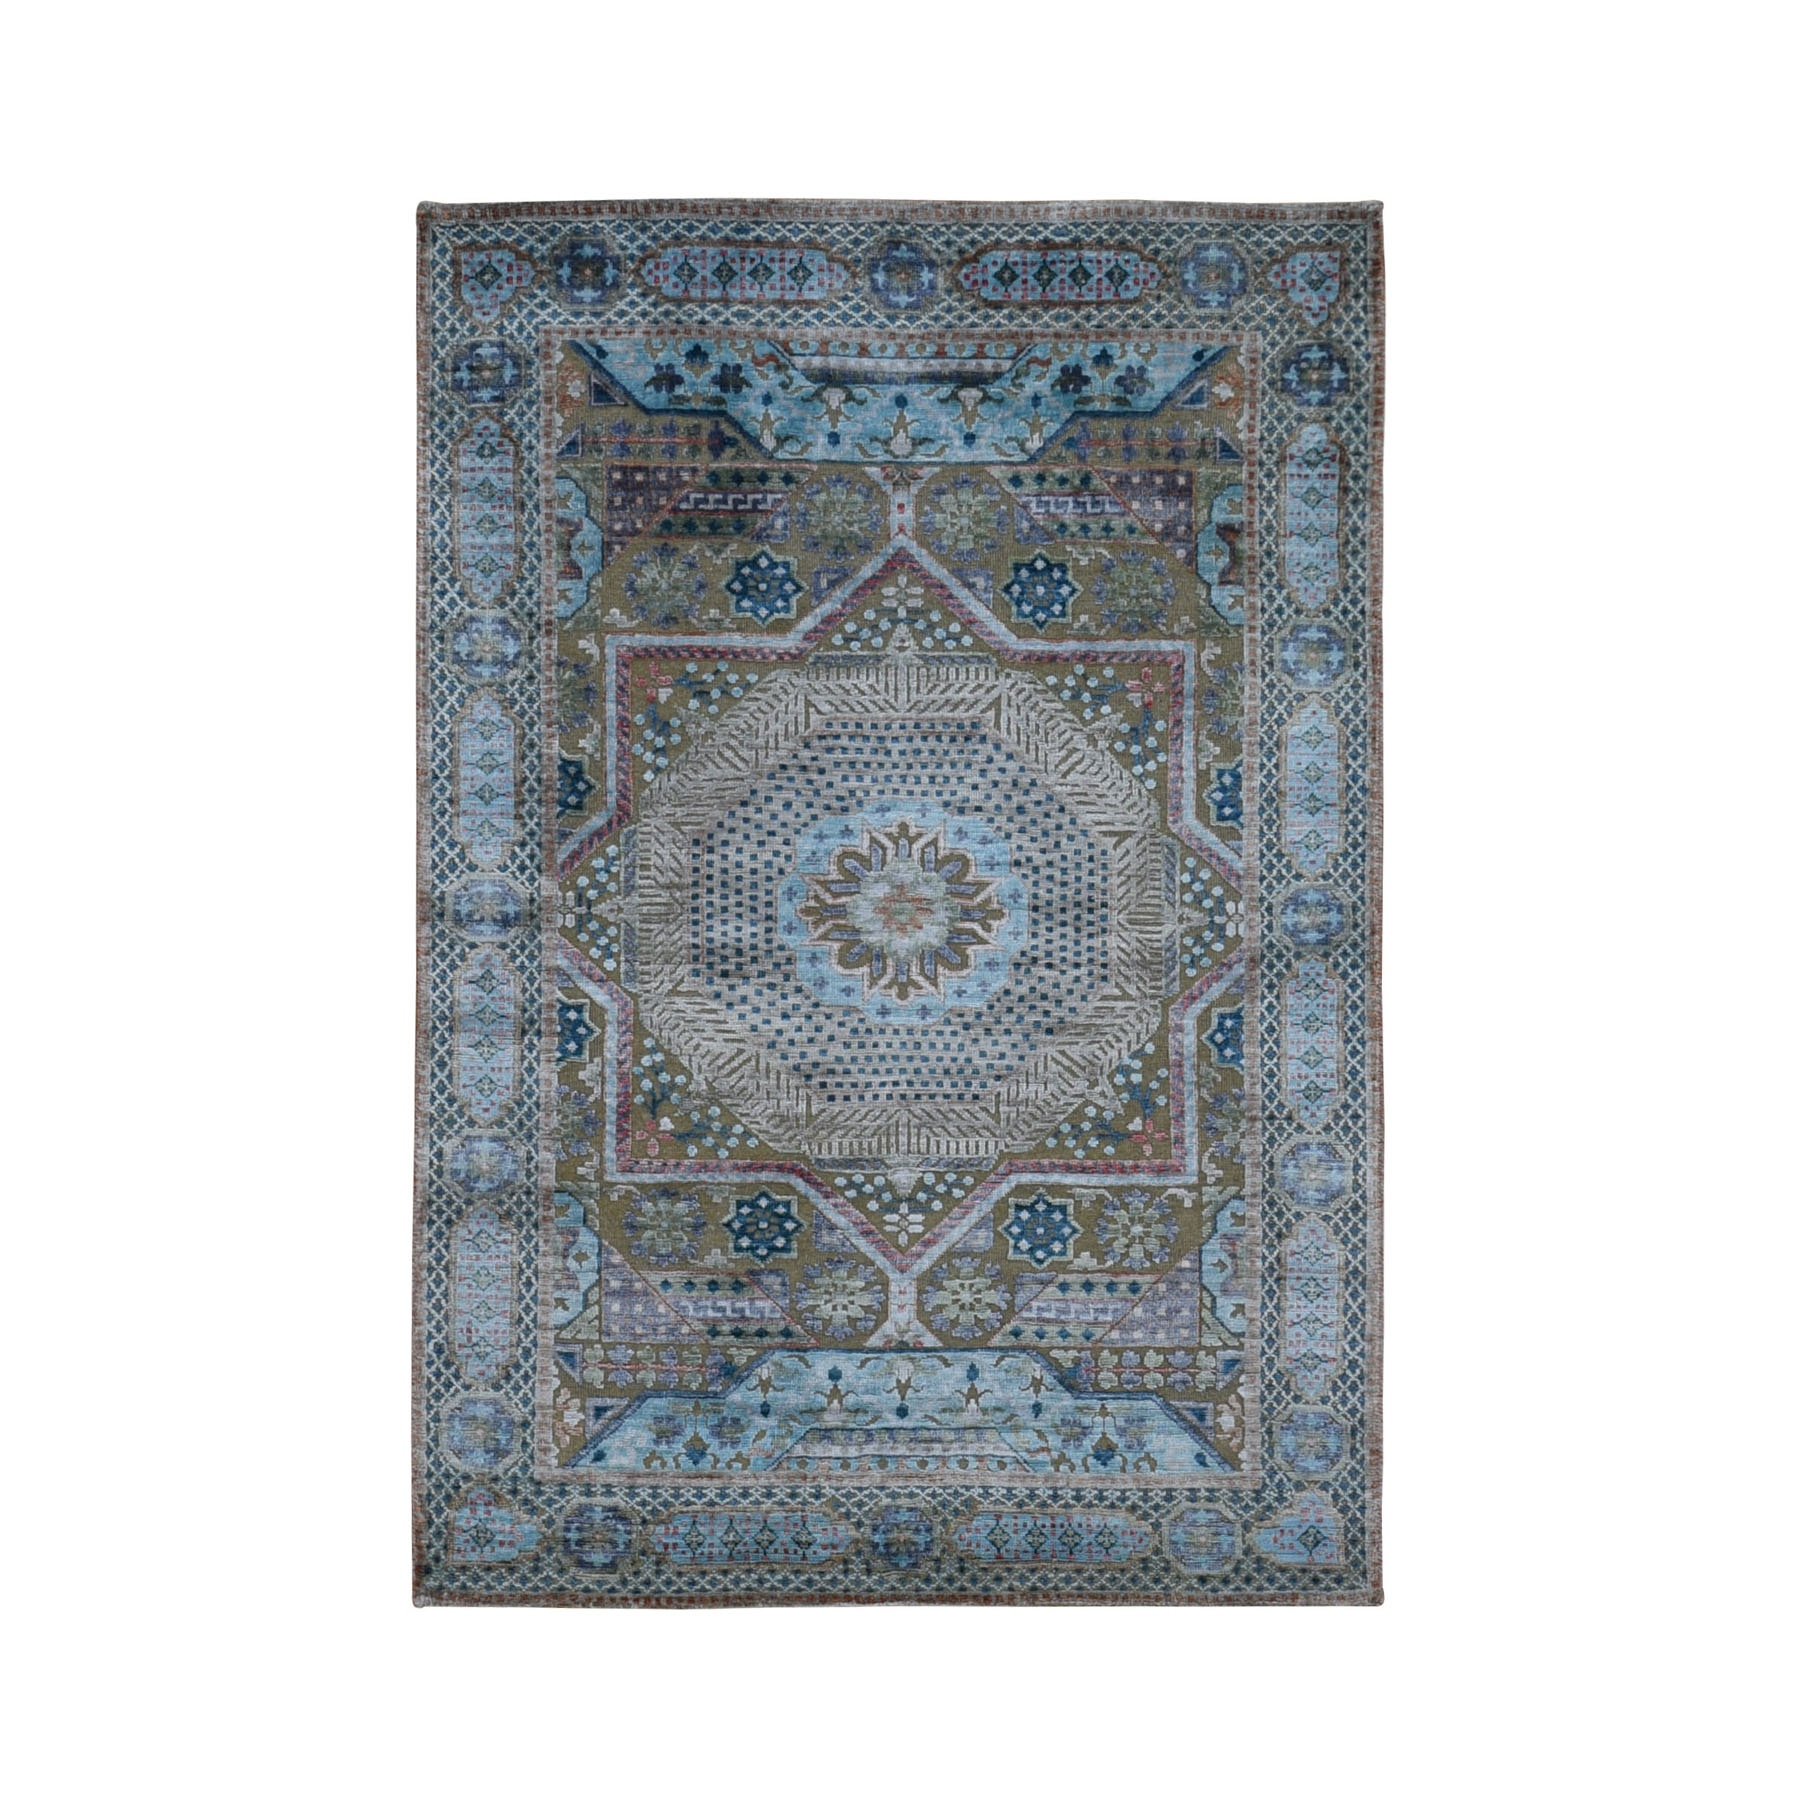 "4'x5'10"" Silk With Textured Wool Mamluk Design Hand knotted Oriental Rug"